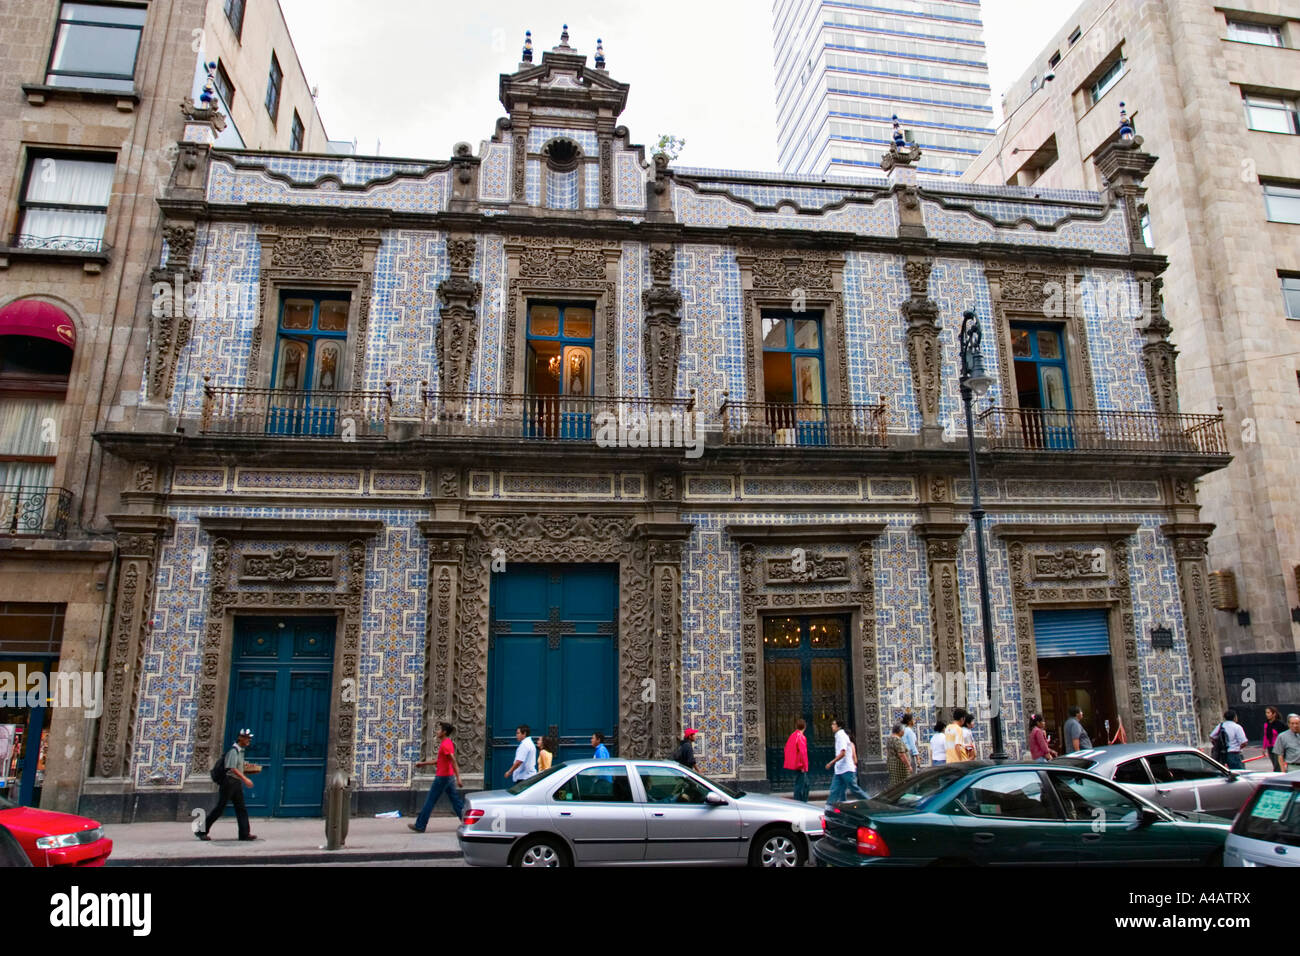 Casa de los azulejos mexico city mexico stock photo for Casa de los azulejos en mexico